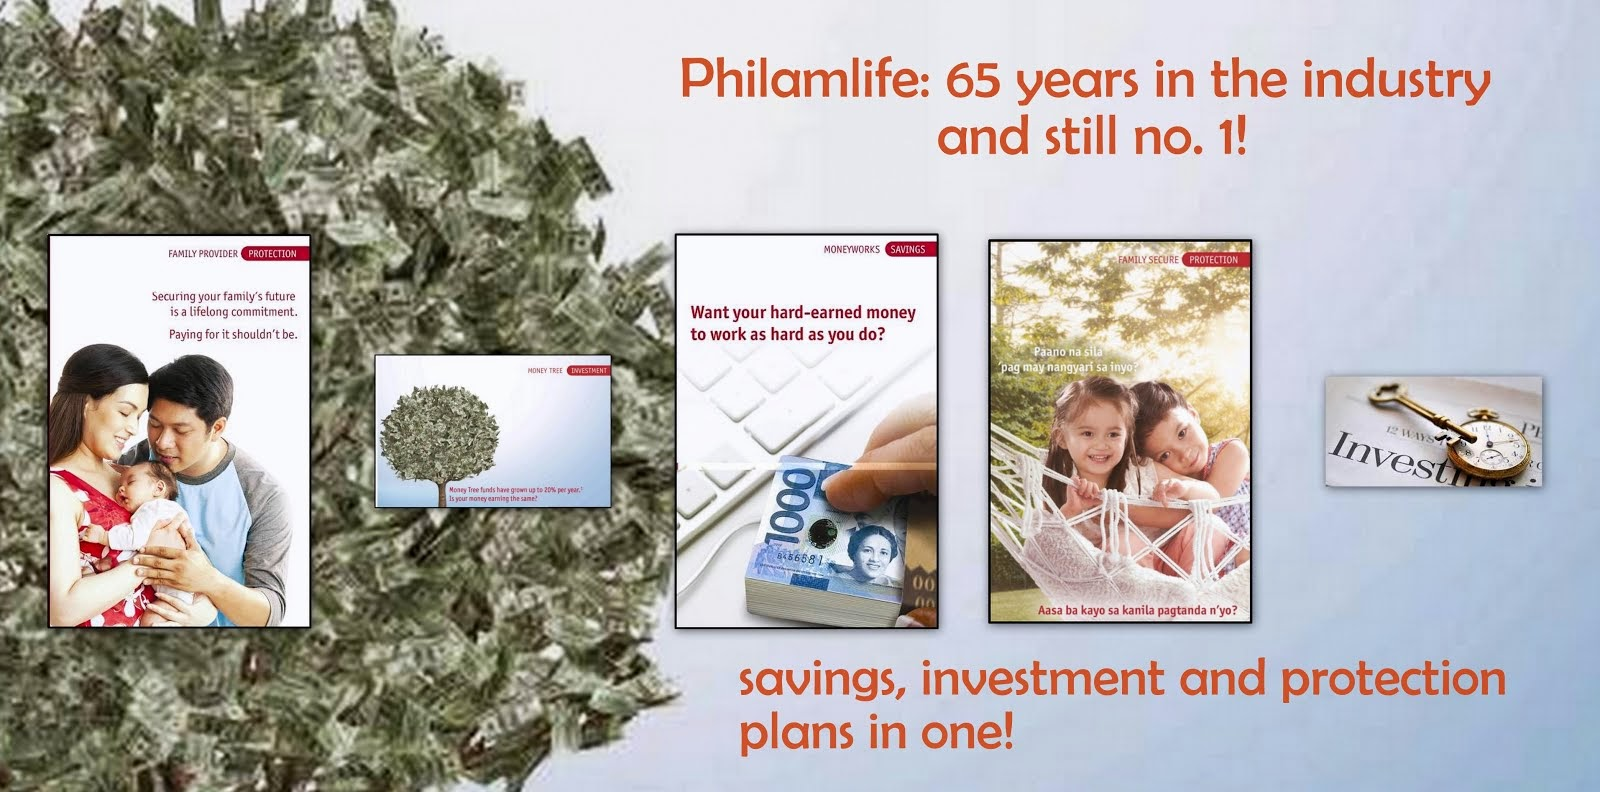 PHILAM LIFE SAVINGS PLAN AND INVESTMENT